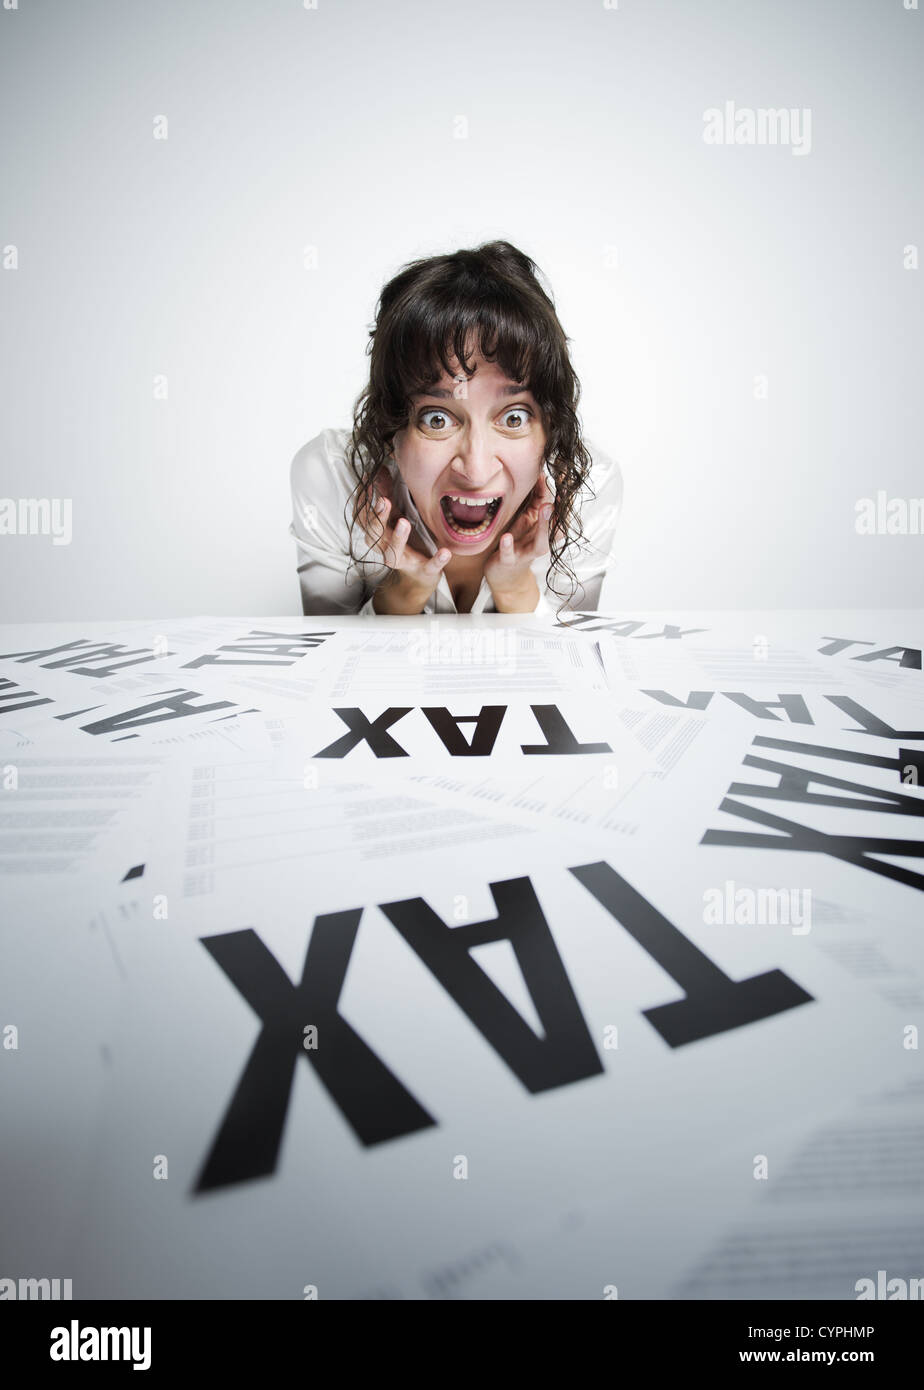 Astonished woman looking at a bunch of worrying tax forms on her desk - Stock Image